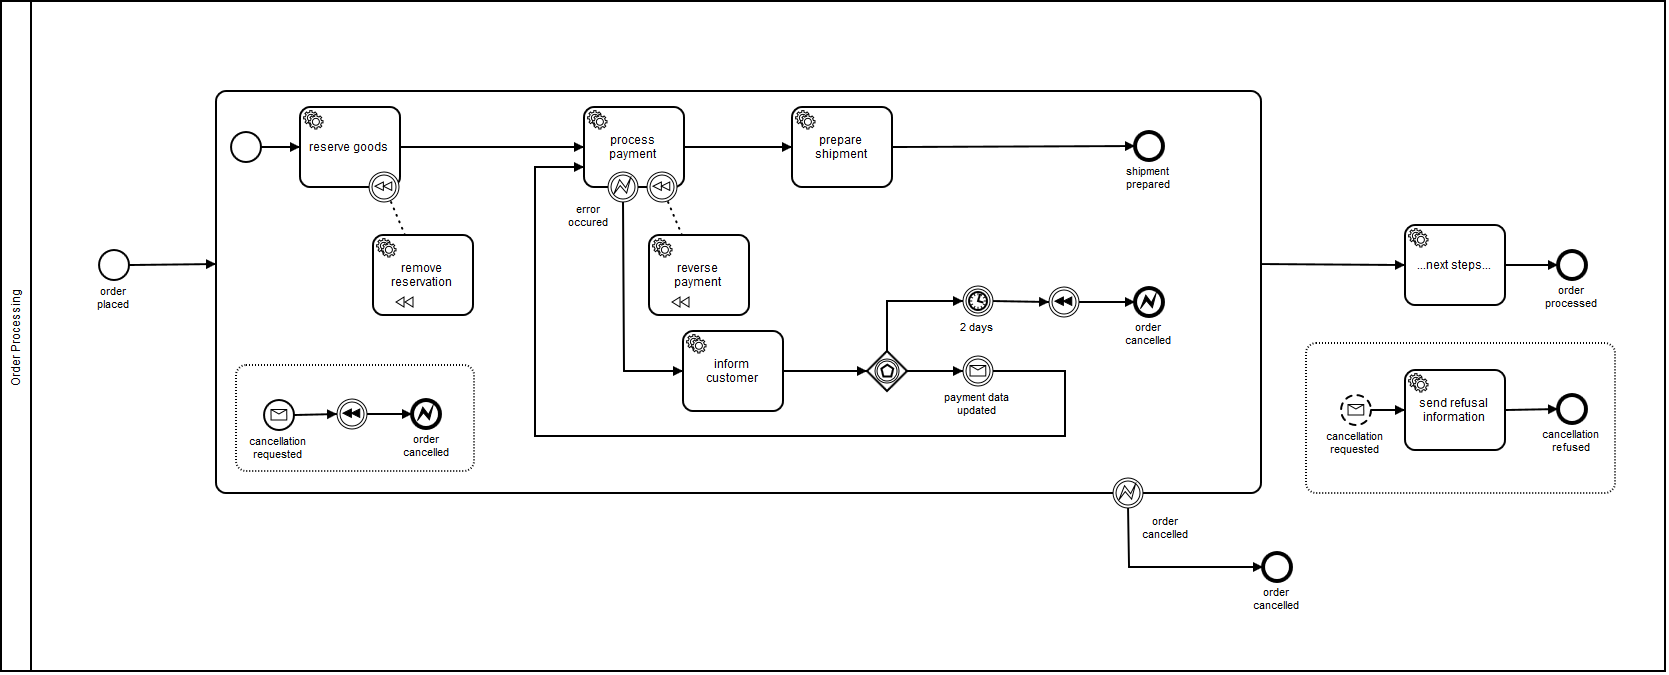 Orchestration Using Bpmn And Microservices Good Or Bad Practice Process Flow Diagram Notation